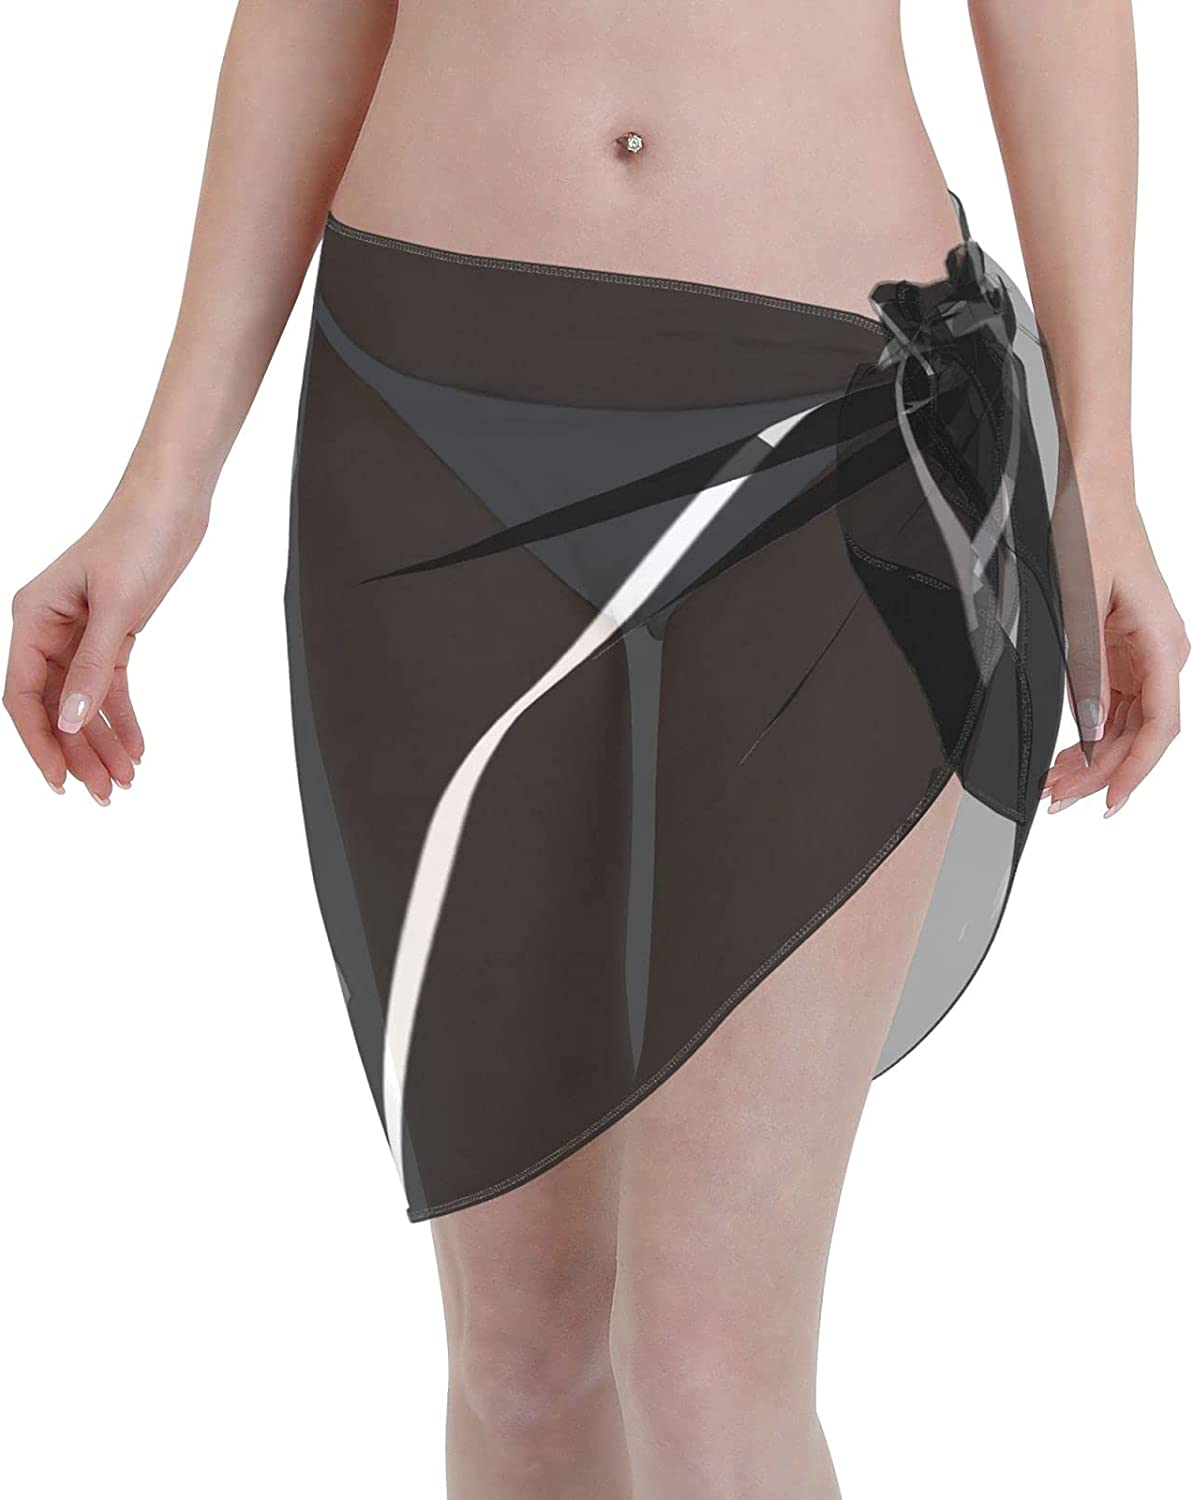 2053 pants Geometric Abstract - Black and White. Women Chiffon Beach Cover ups Beach Swimsuit Wrap Skirt wrap Bathing Suits for Women